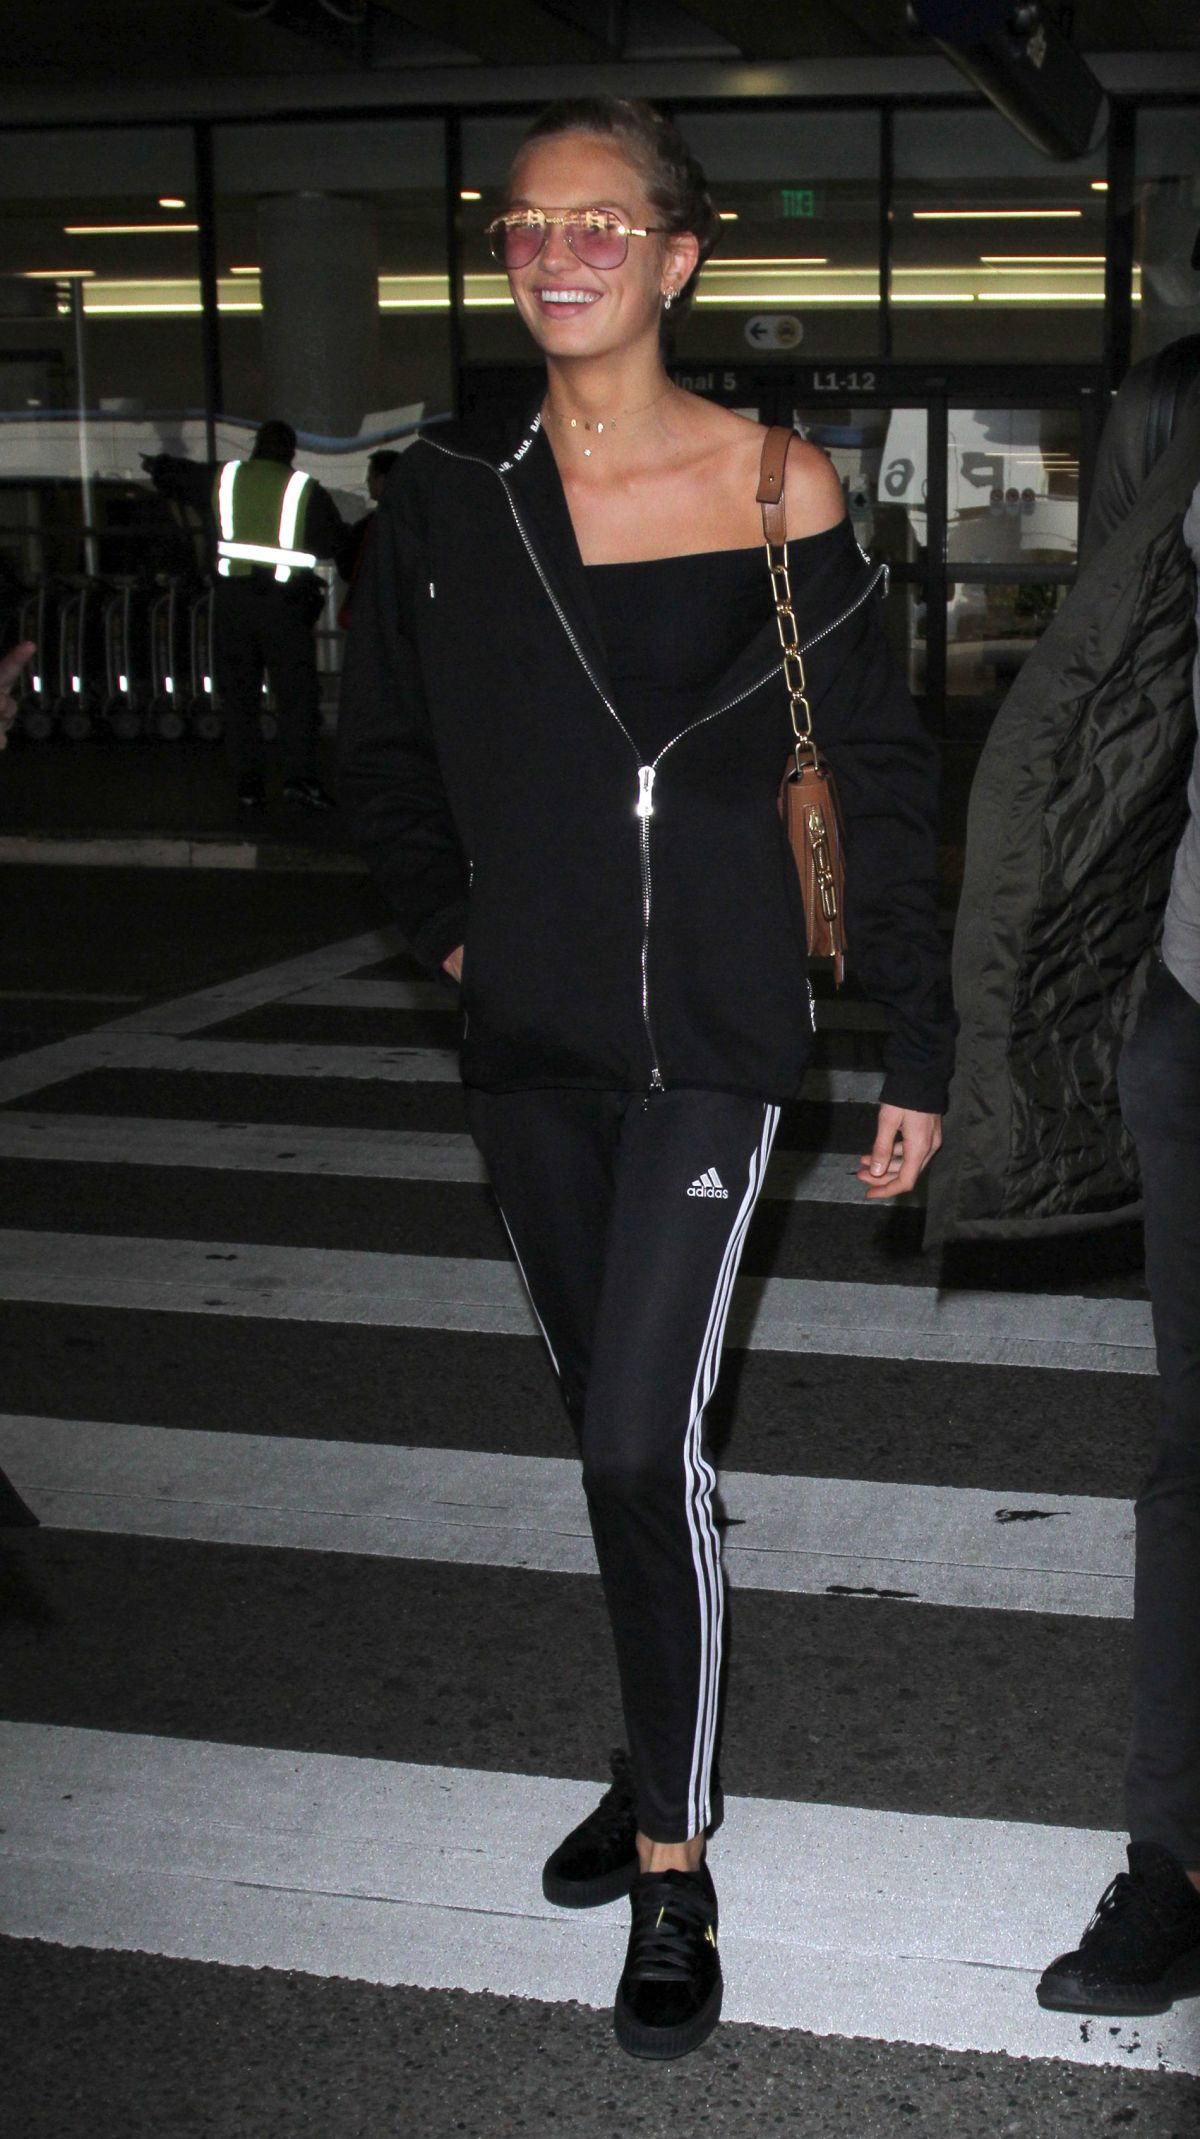 ROMEE STRIJD at LAX Airport in Los Angeles 01/24/2017